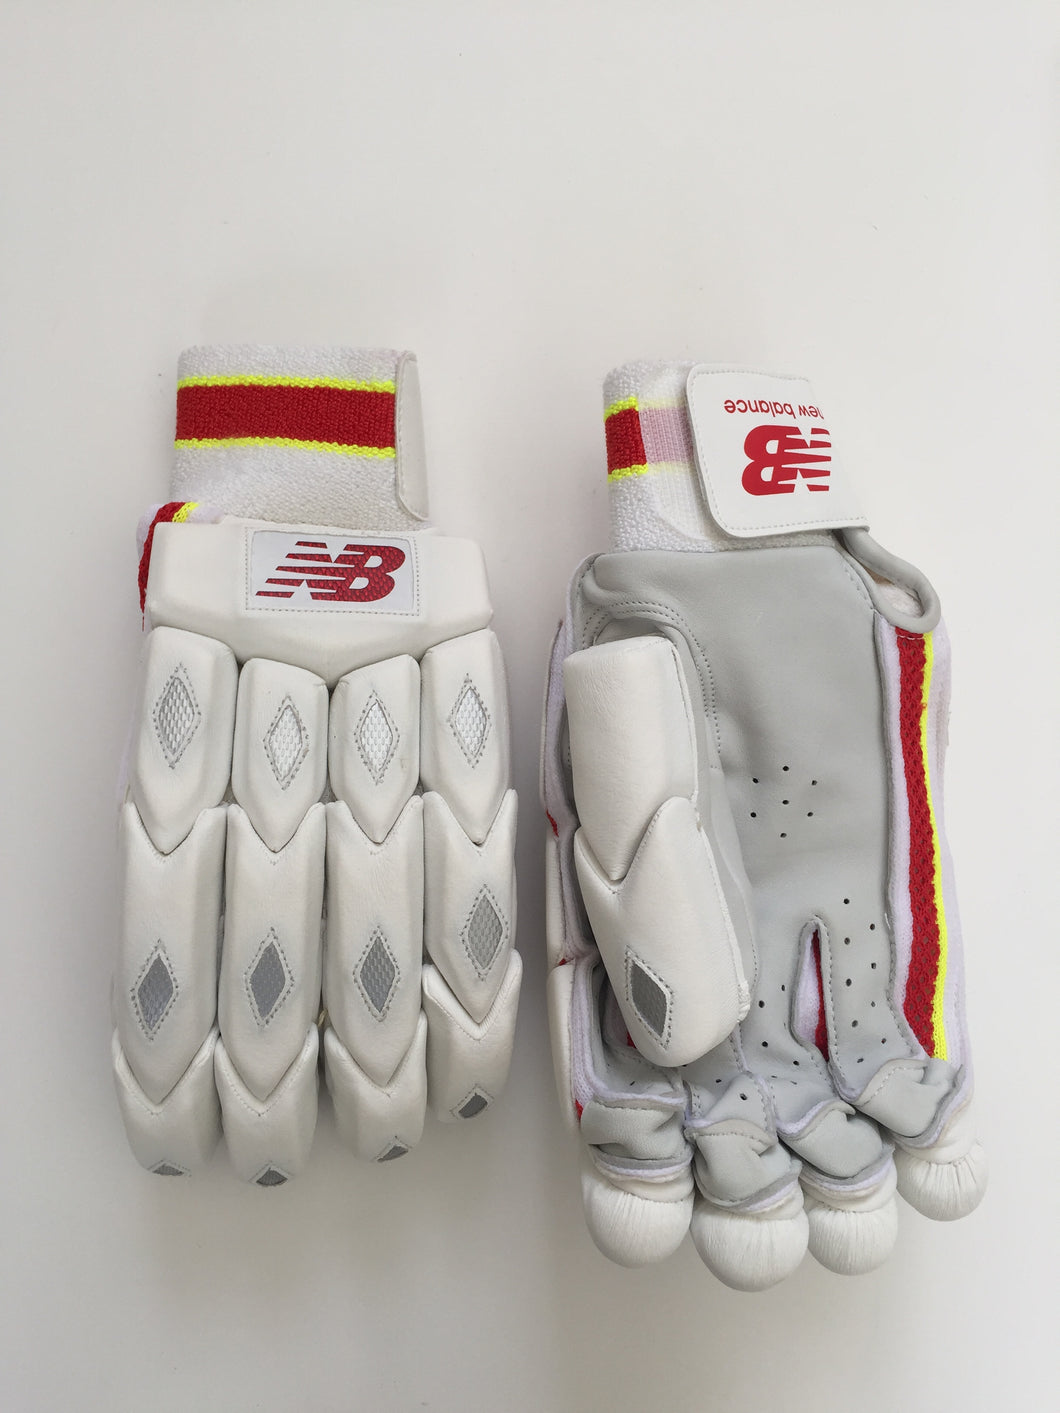 New Balance TC 1260 Cricket Batting Gloves LH - DKP Cricket Online